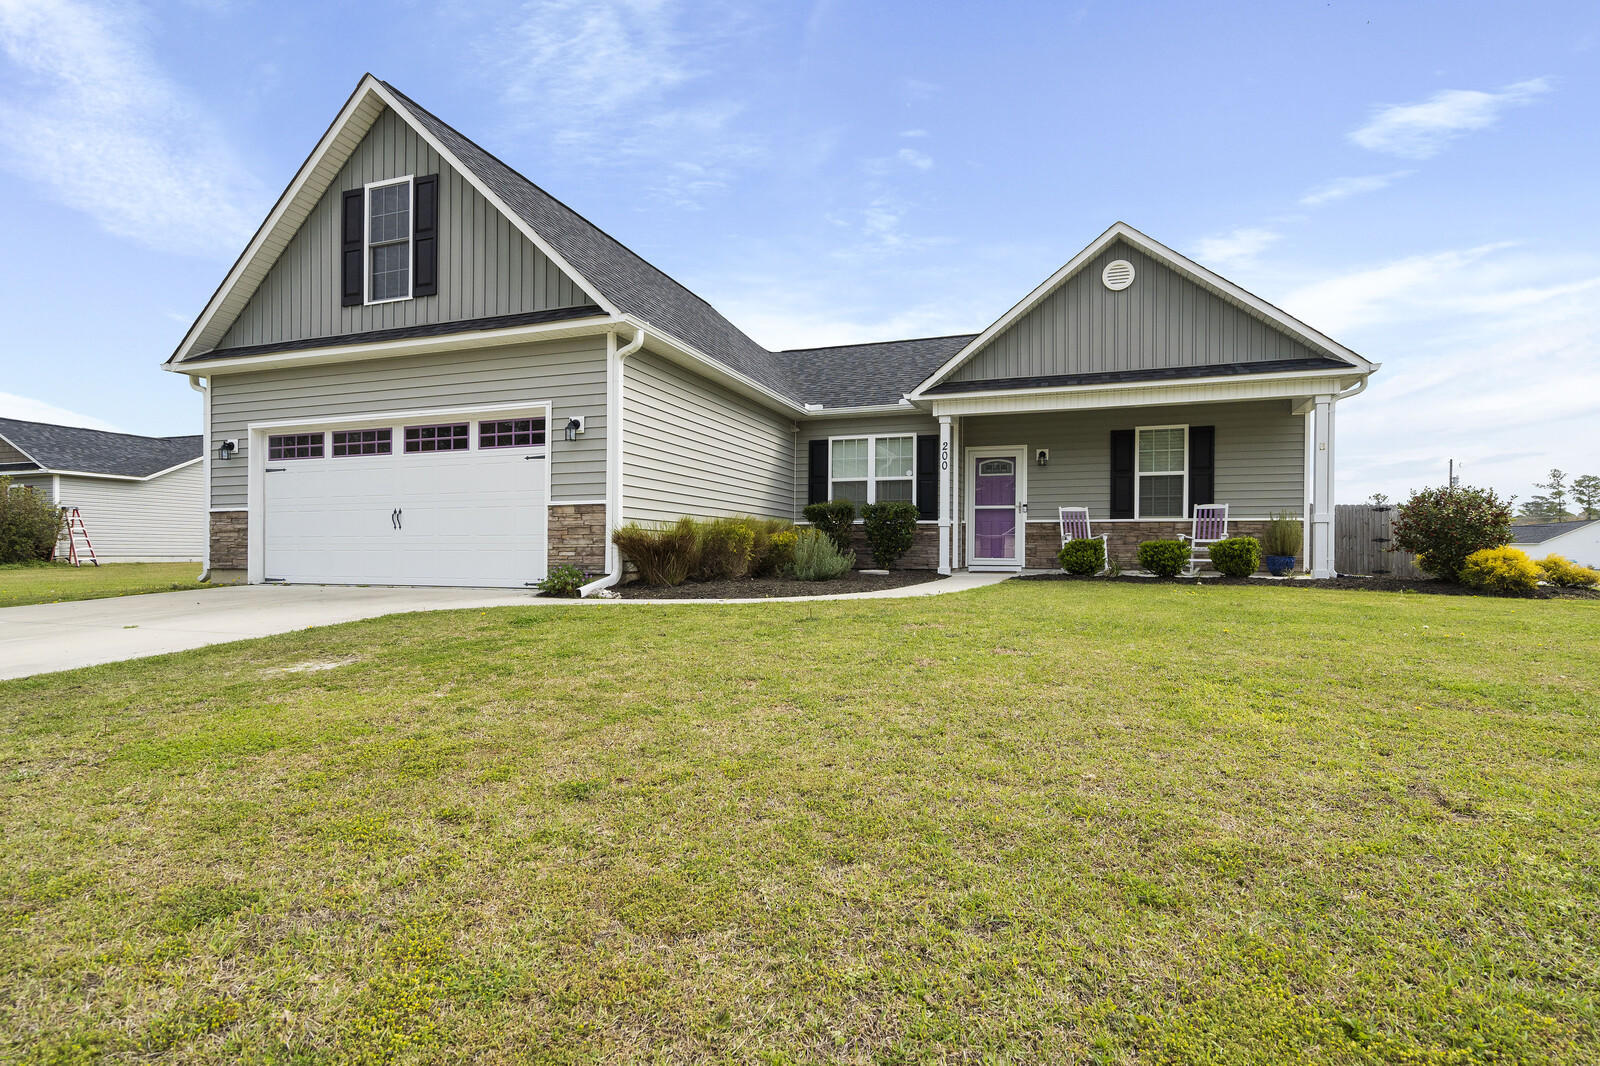 This beautiful home is just a short drive from Camp Lejeune shopping and beaches.  This home has a spacious back yard perfect for kids and entertaining. Very spacious floor plan with large kitchen for cooking and entertaining, stainless steel appliances, and lots of cabinet space. Low maintenance floors throughout the living room, foyer, kitchen and formal dining area. Large upstairs room, and three bedrooms downstairs. Bring your buyers, all offers are welcome and will be considered!